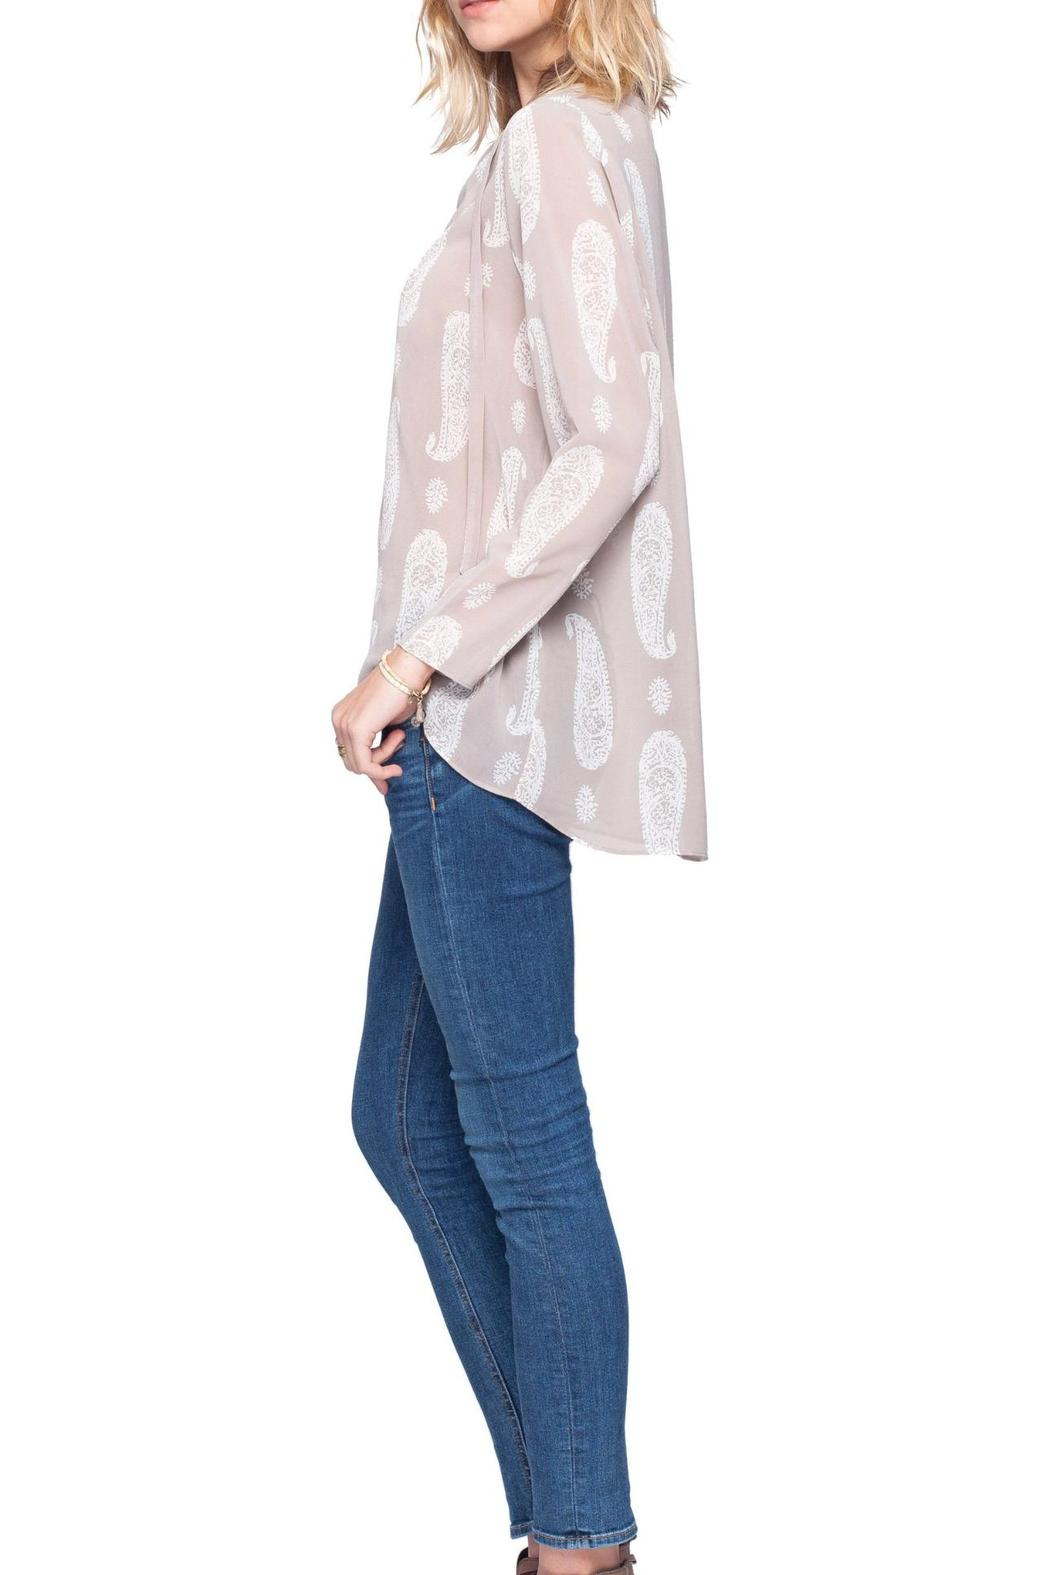 Gentle Fawn Paisley Print Top - Side Cropped Image